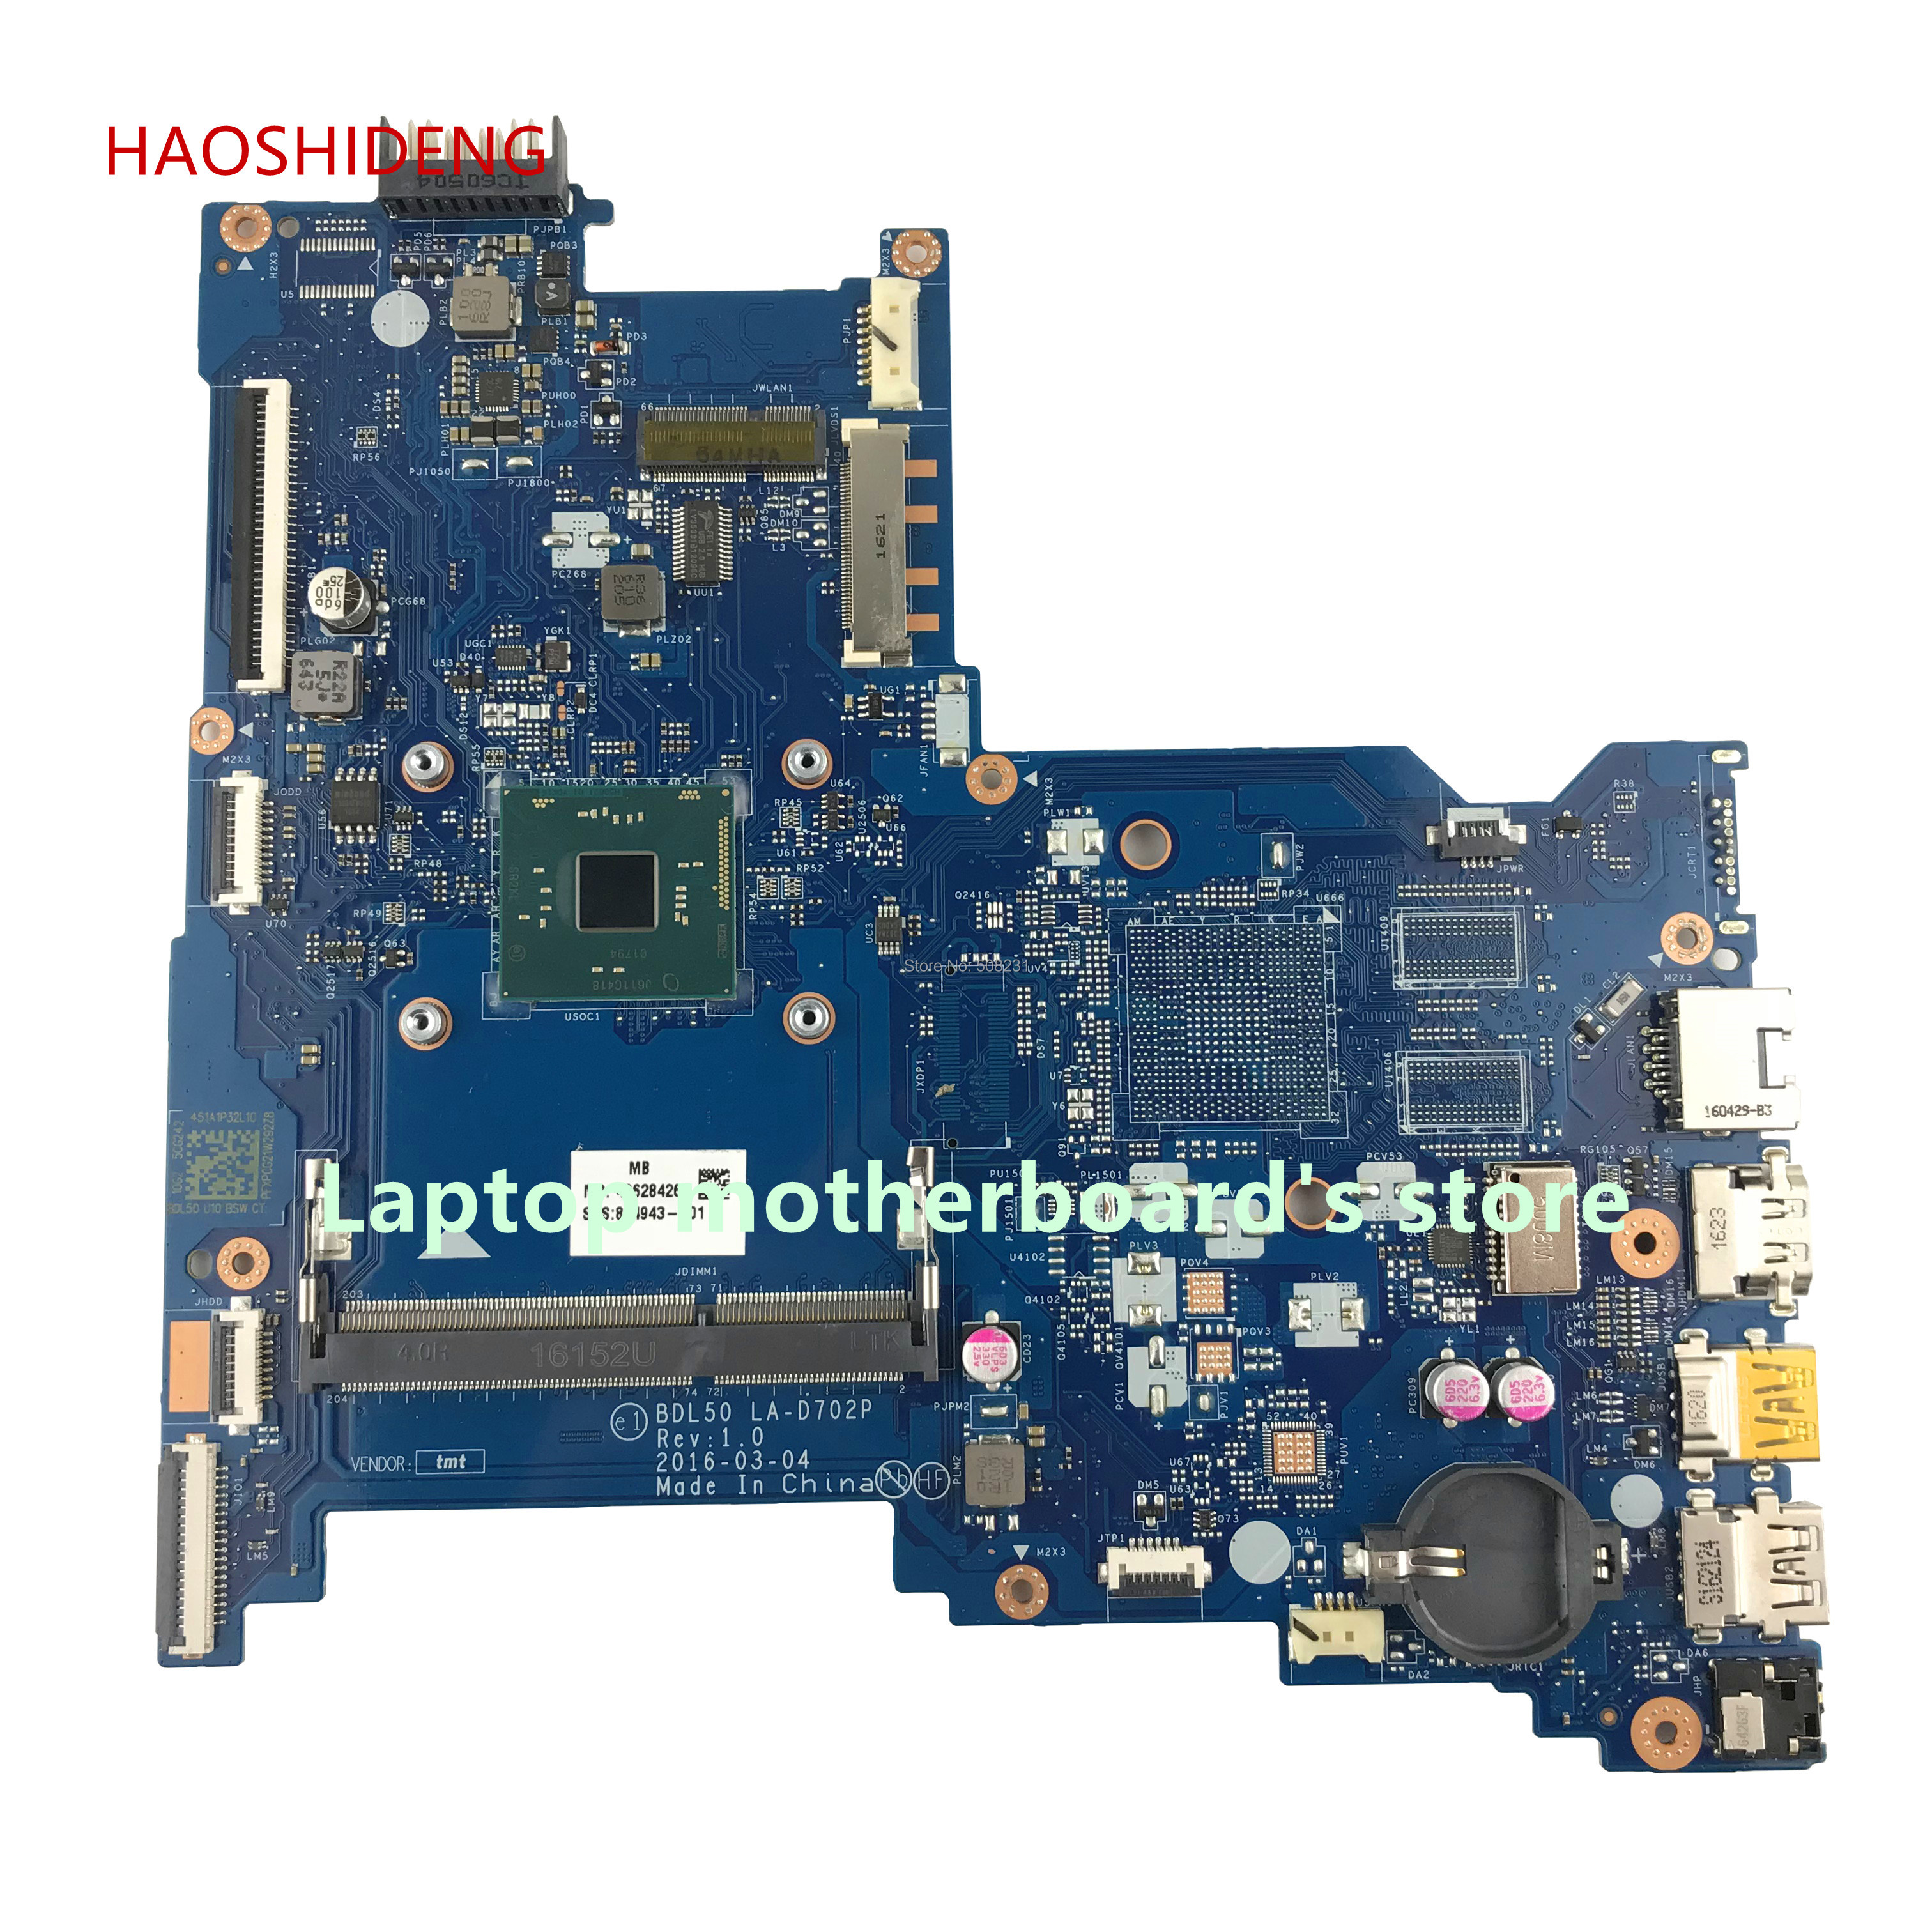 HAOSHIDENG 854943-601 854943-501 LA-D702P for HP NOTEBOOK 15-AY 15-AC 15-AY022DS laptop motherboard with N3710 fully Tested free shipping 854949 601 bdl50 la d702p for hp notebook 15 ay series motherboard with n3160 cpu all functions 100% fully tested